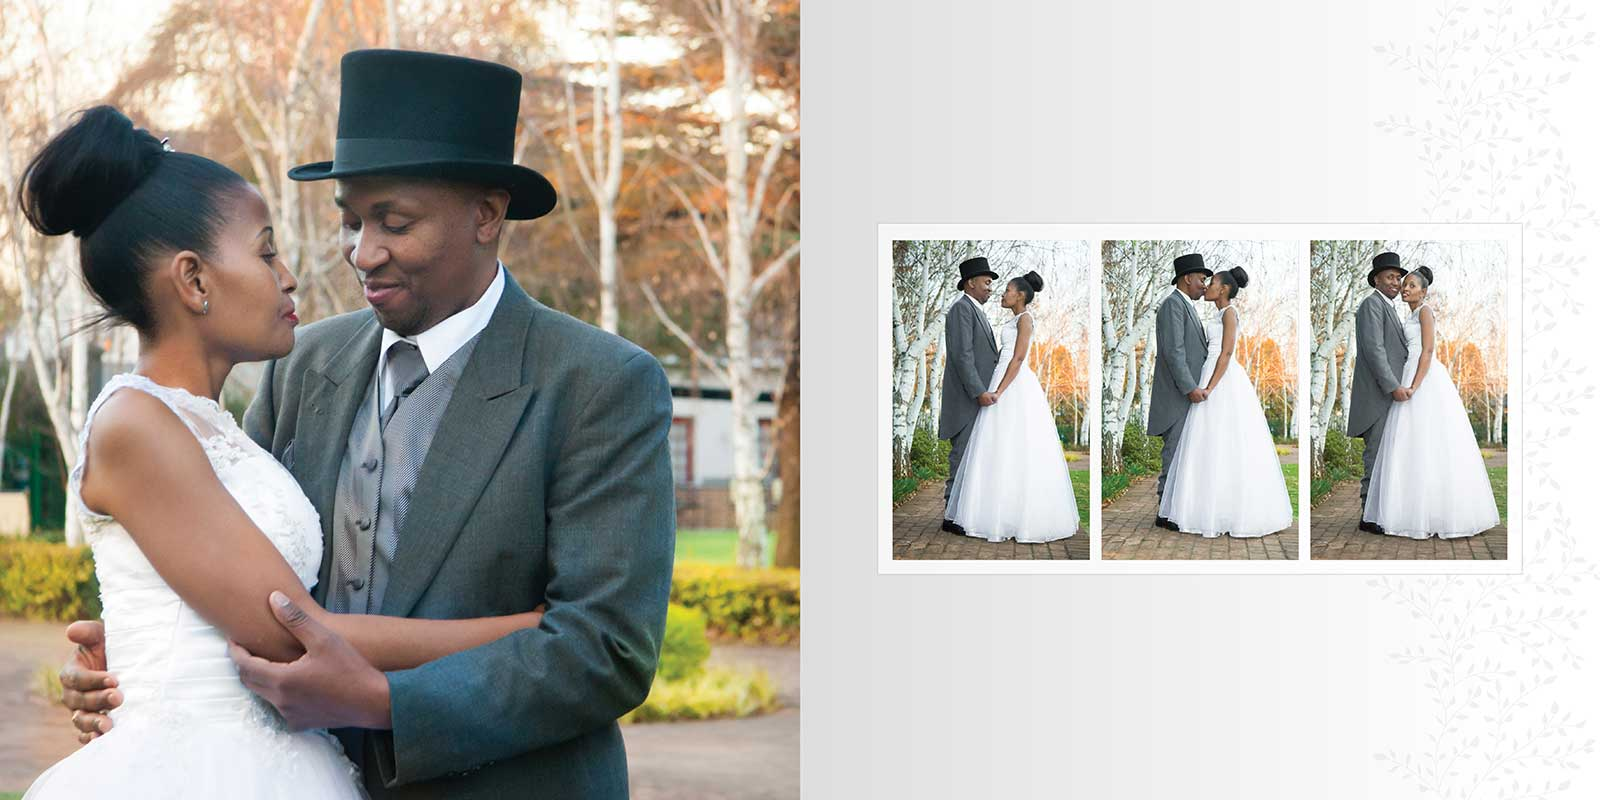 birchwood hotel the ideal wedding setting